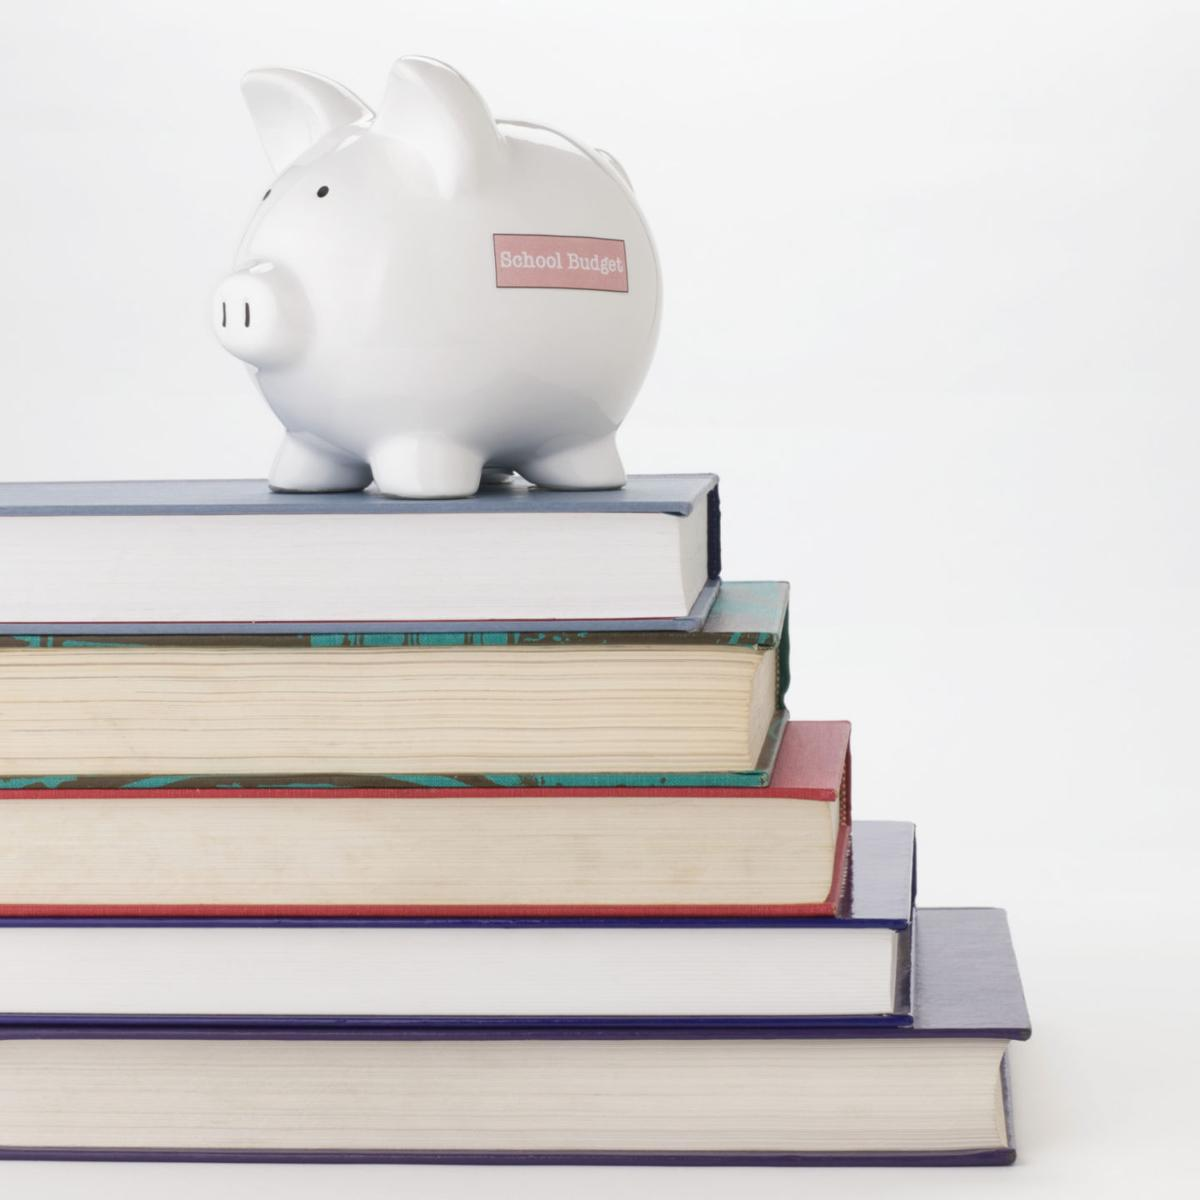 The syllabus the cost of college cont university school books budget piggy bank college generic xflitez Image collections